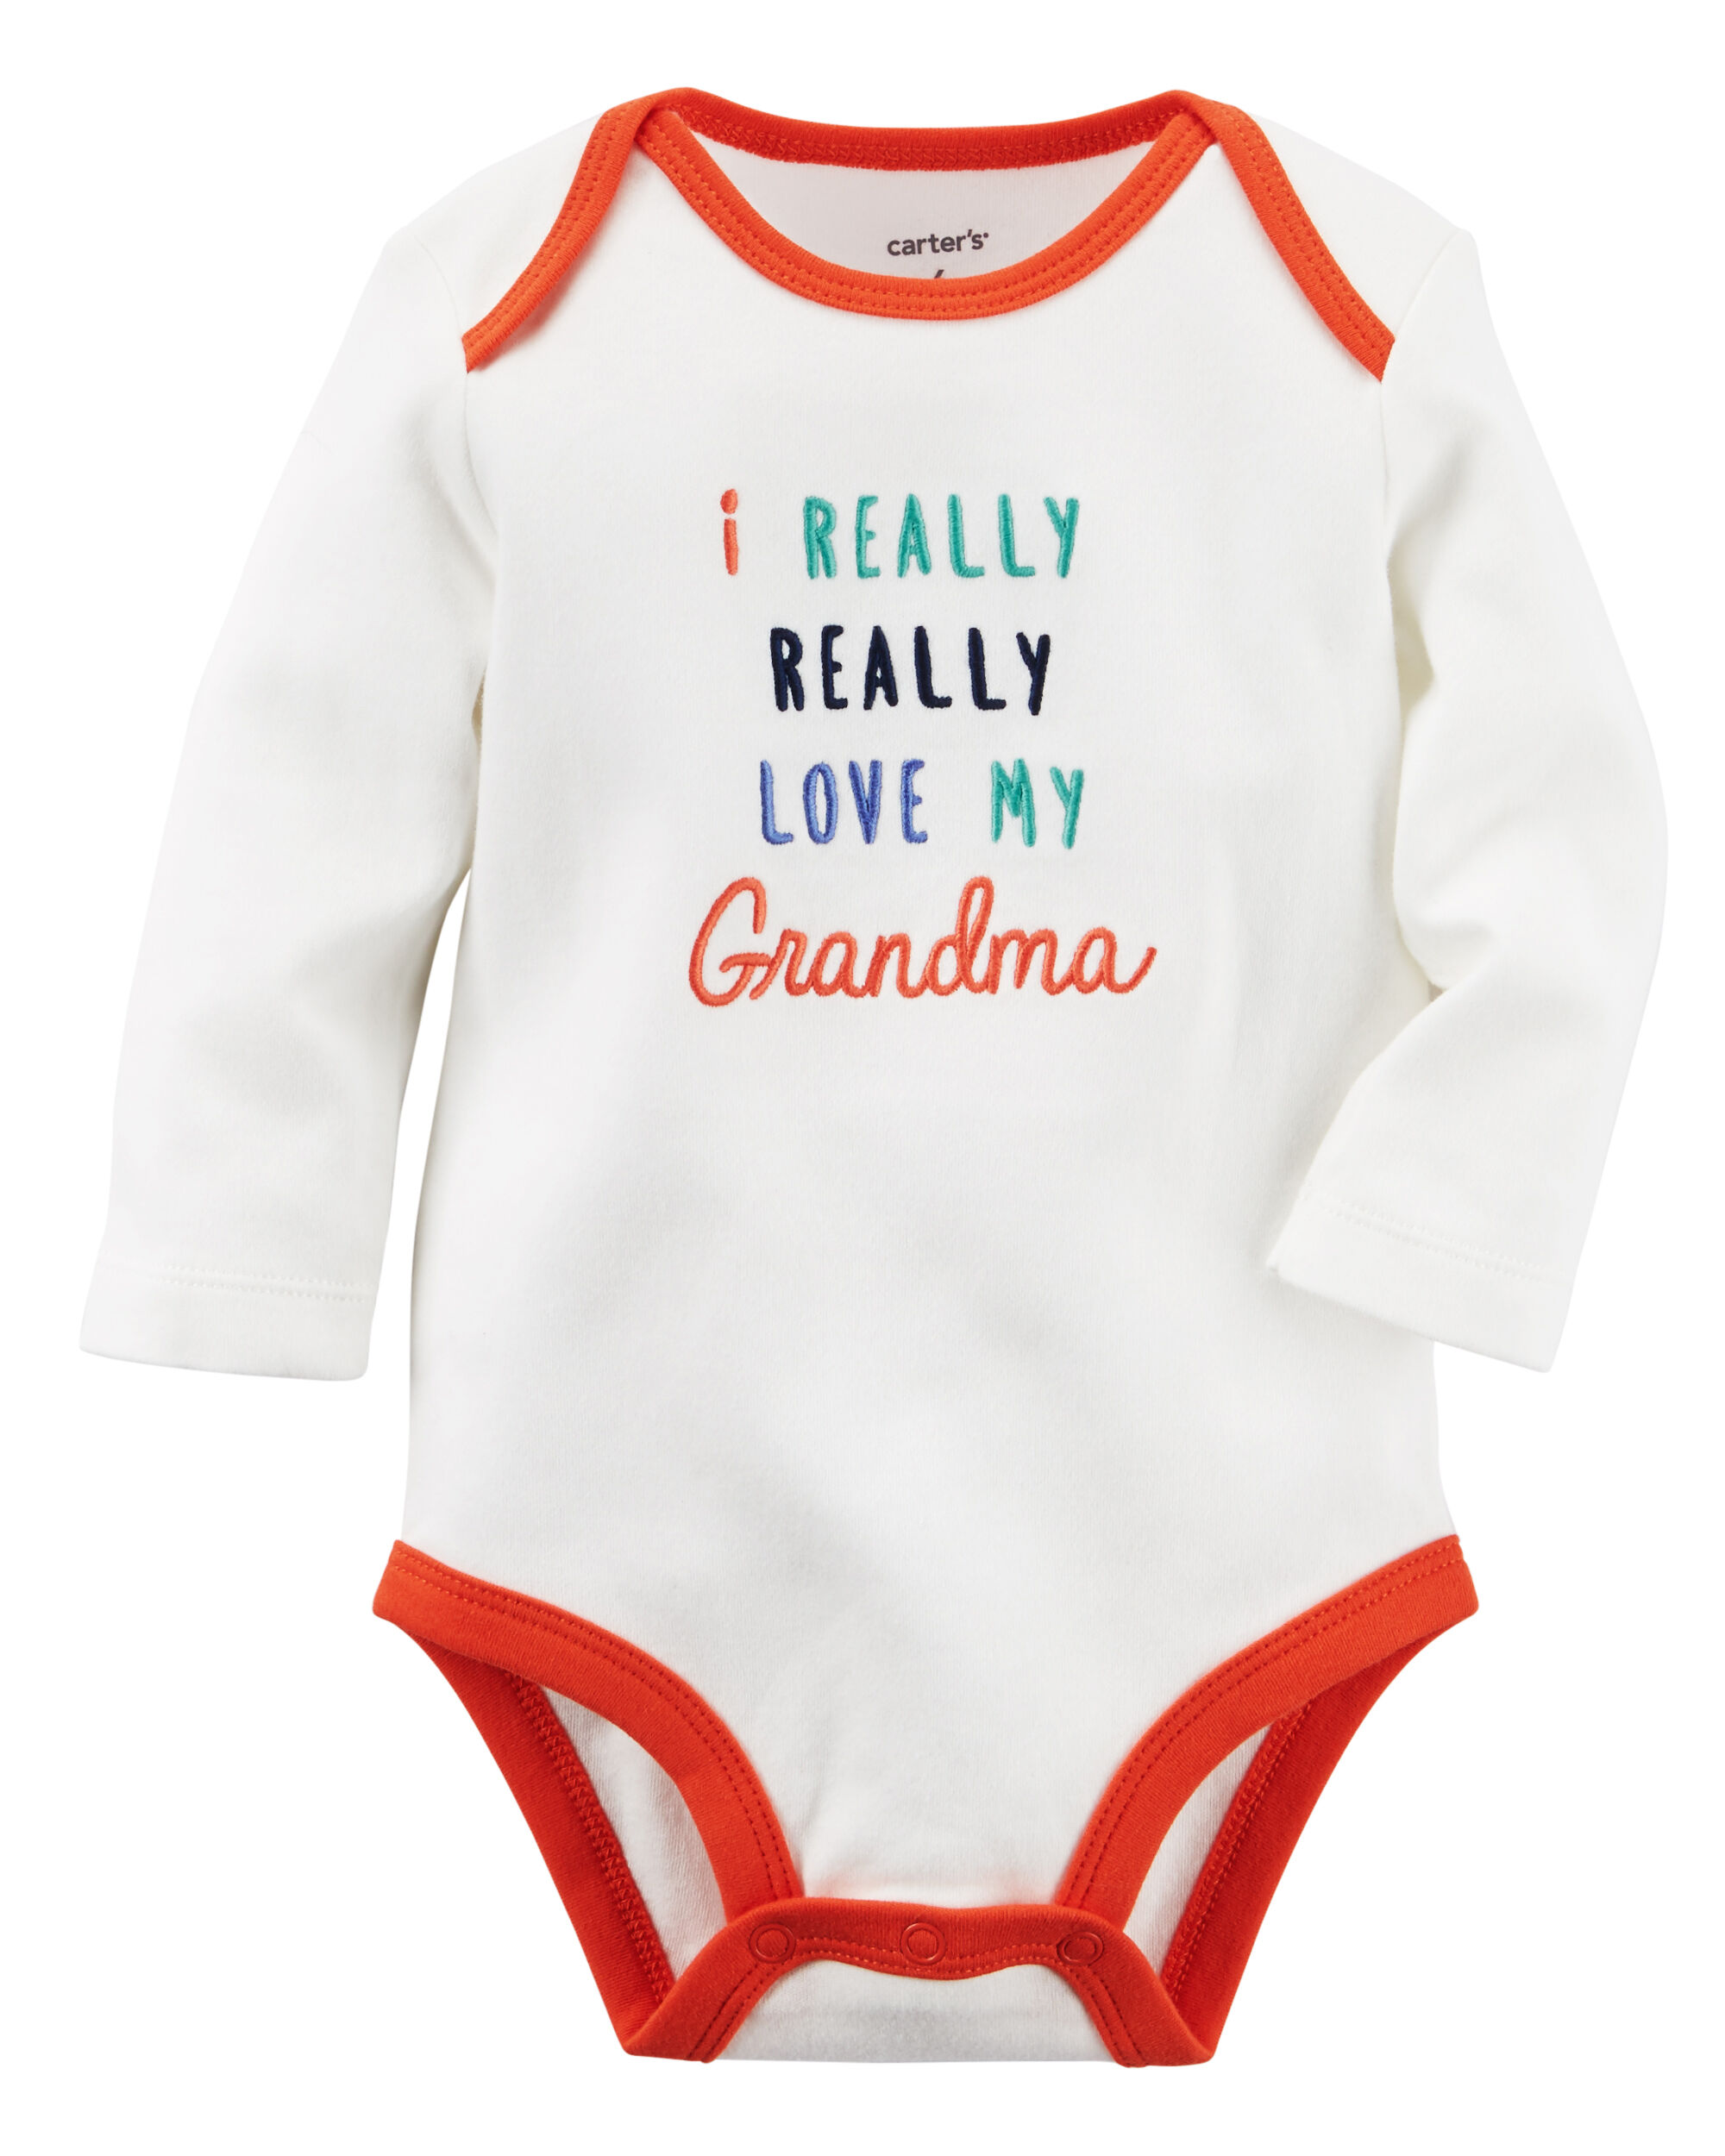 I Really Love My Grandma Collectible Bodysuit